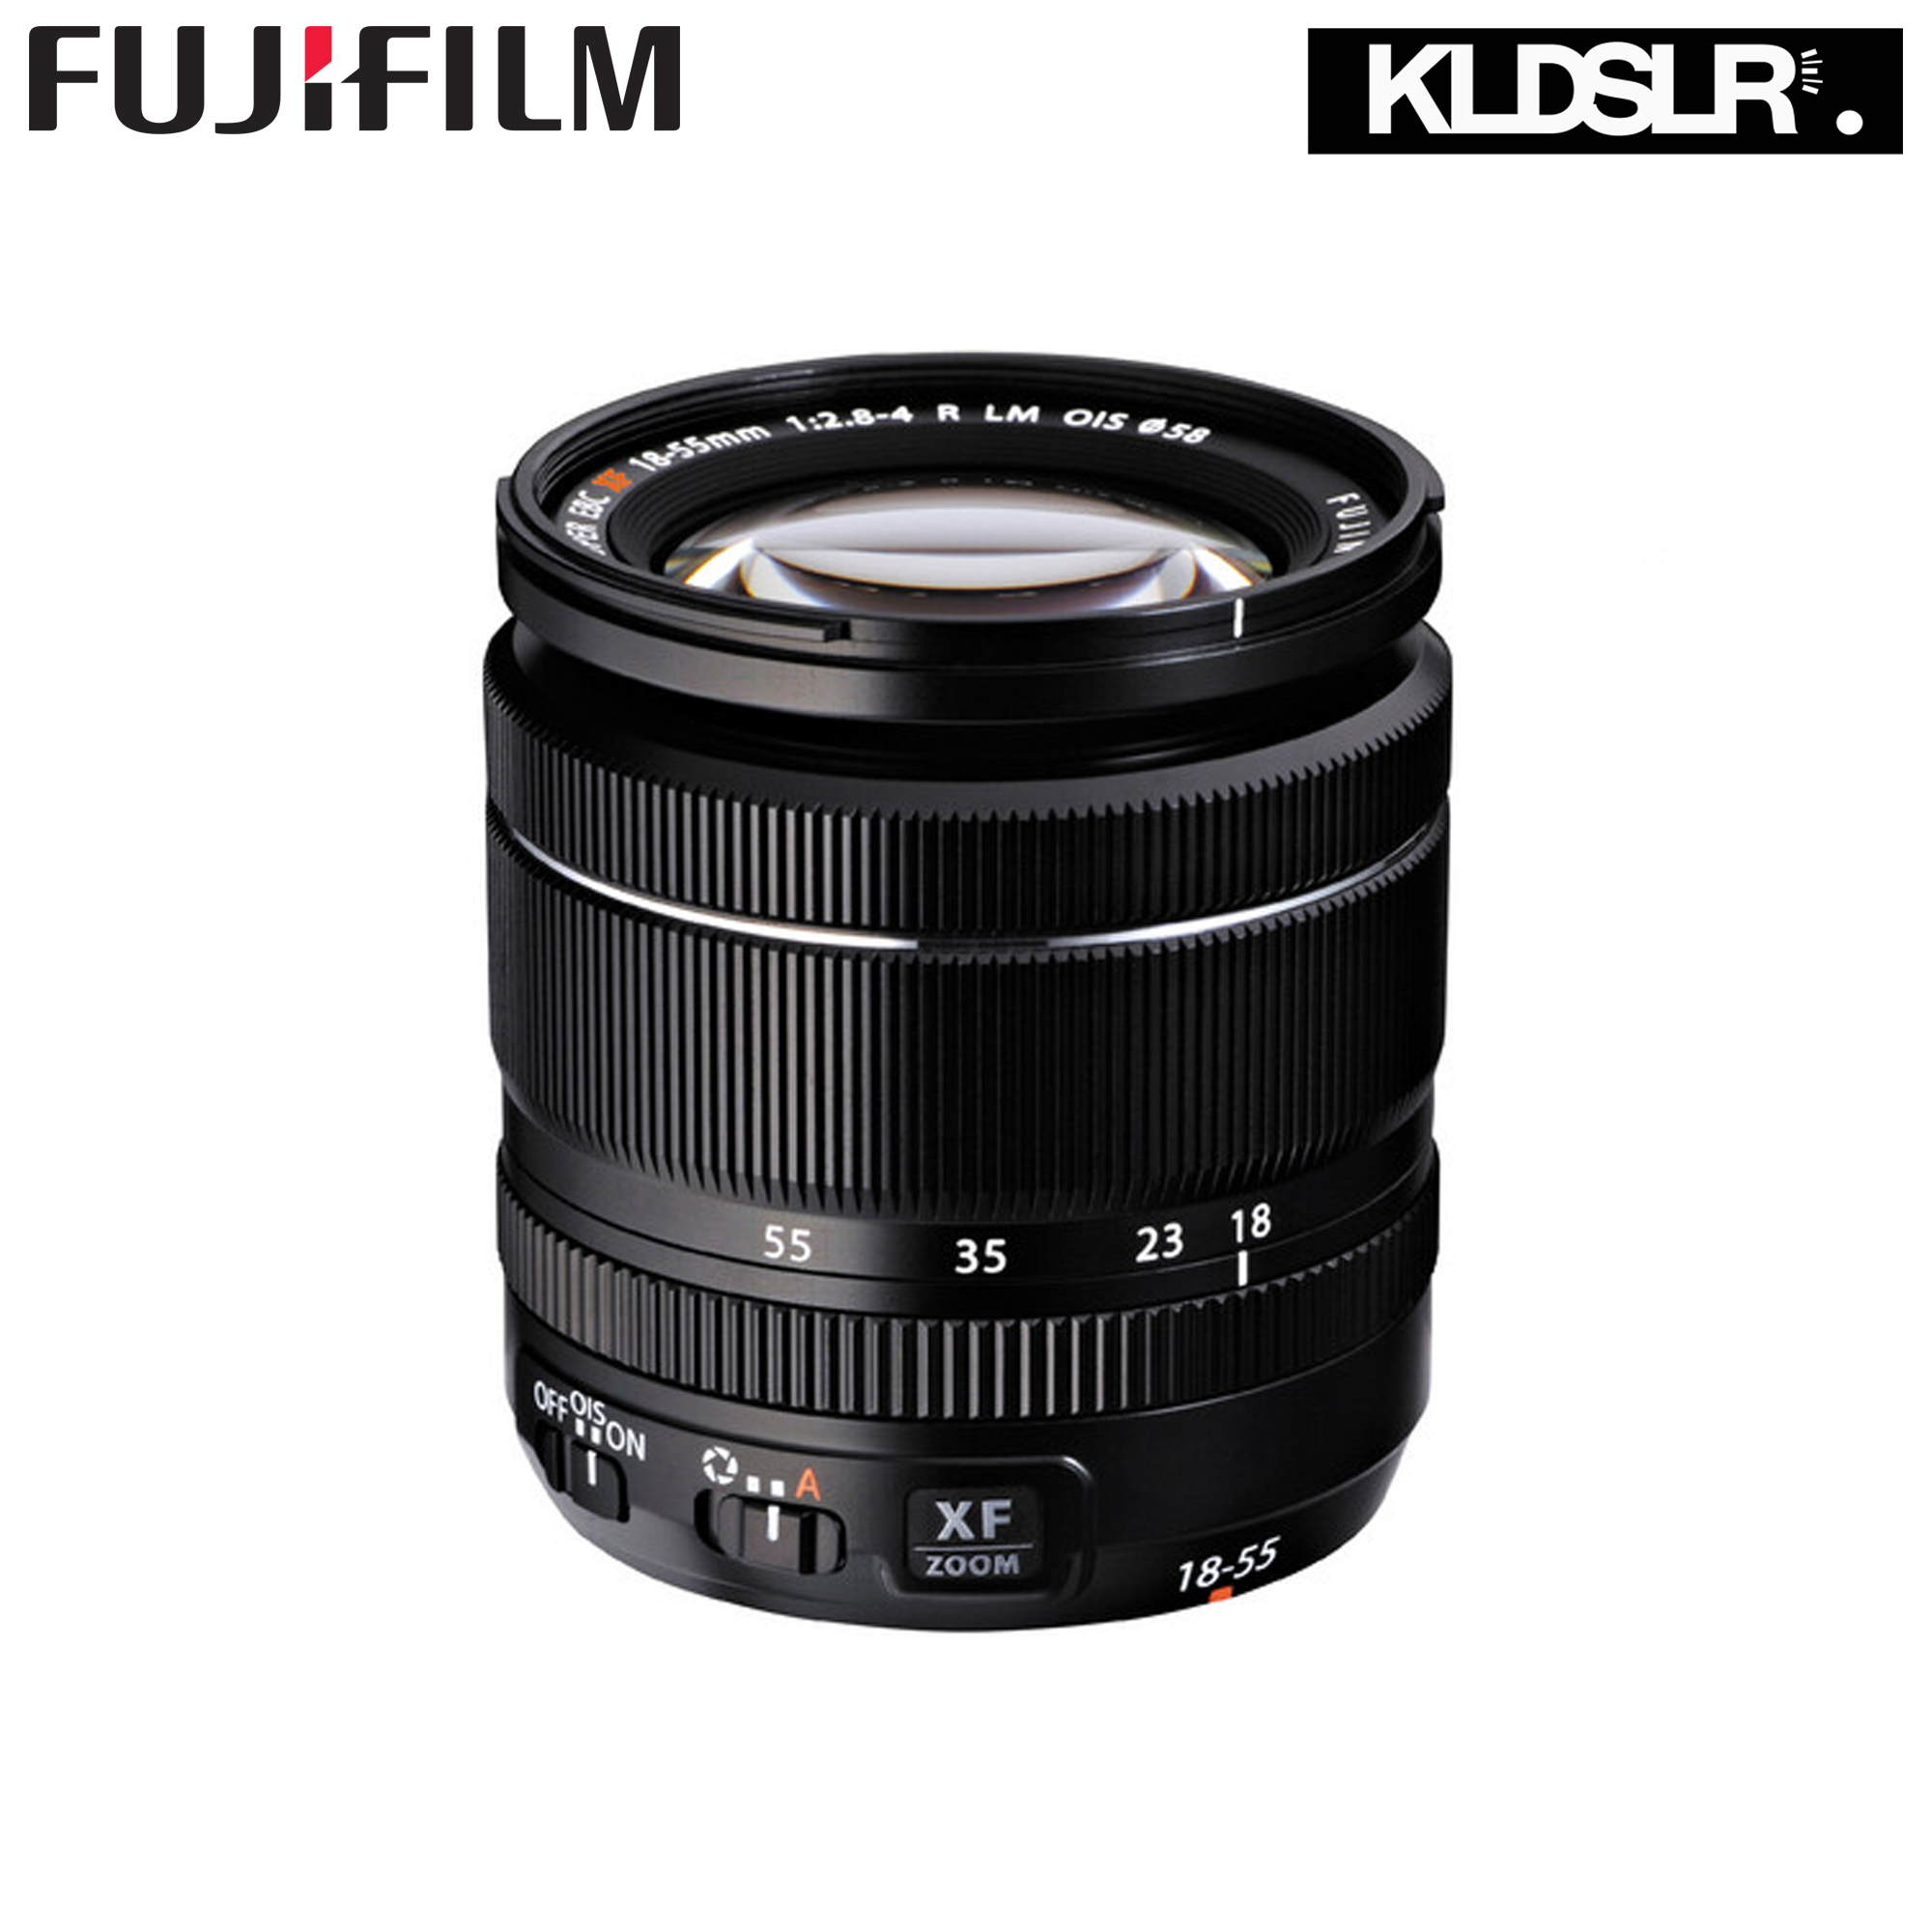 Fujifilm XF 18-55mm f/2.8-4 R LM OIS Zoom Lens (White box from X-T20 Kit) (Fujifilm Malaysia)